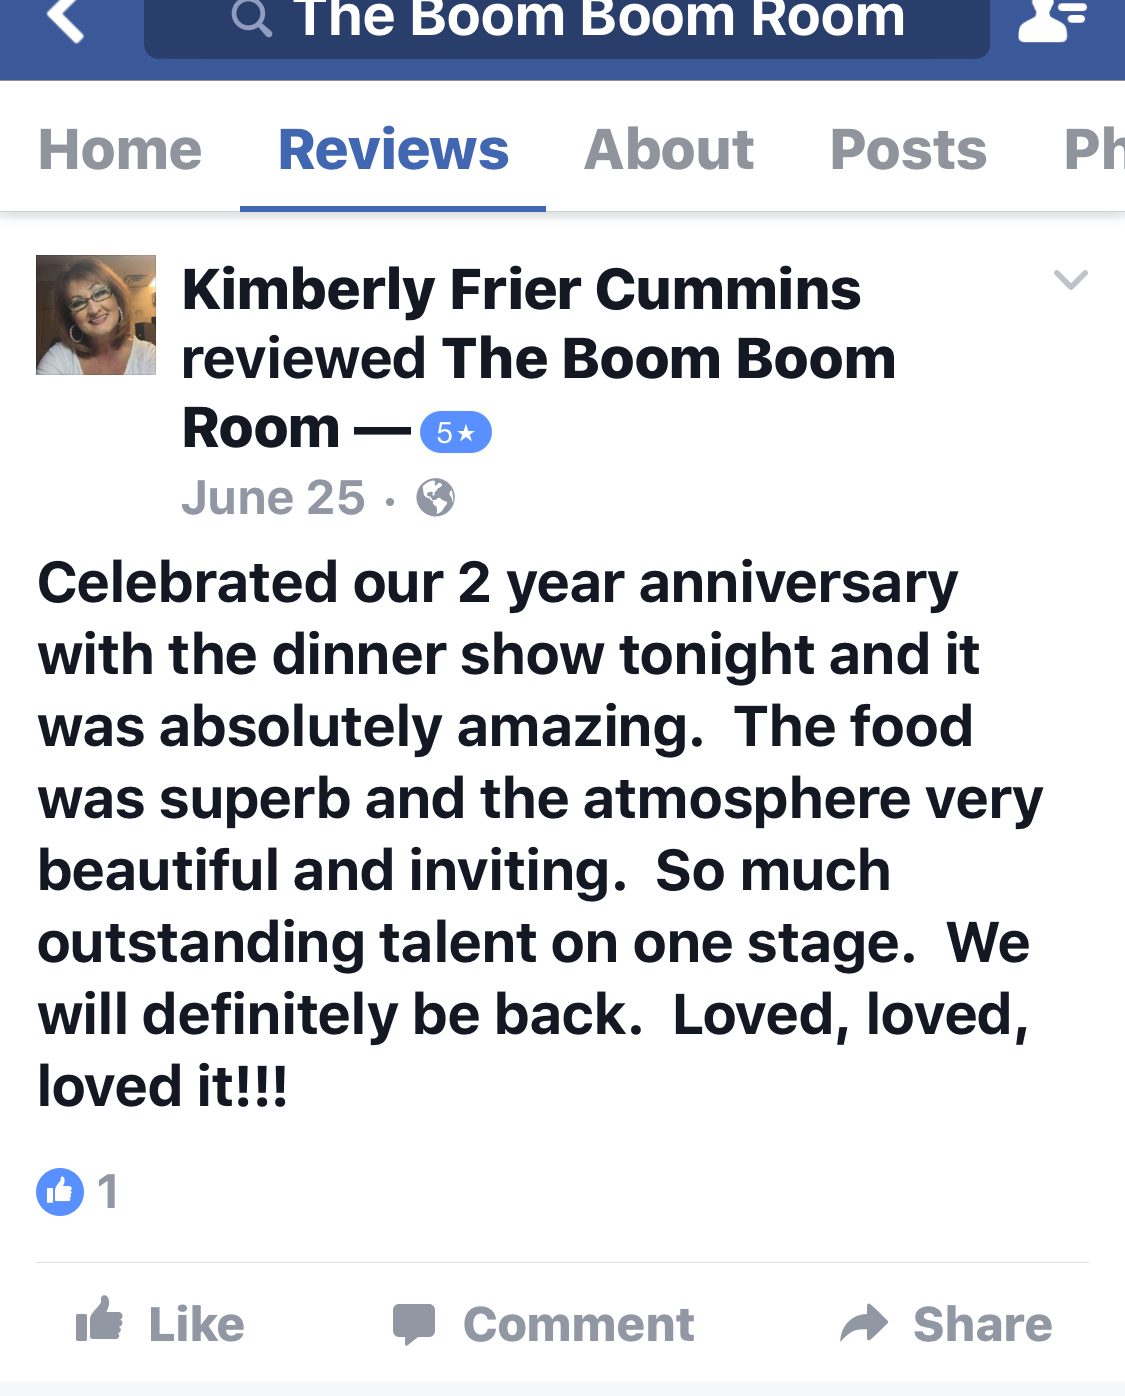 The Boom Boom Room St. Louis Burlesque Positive Reviews -140.png